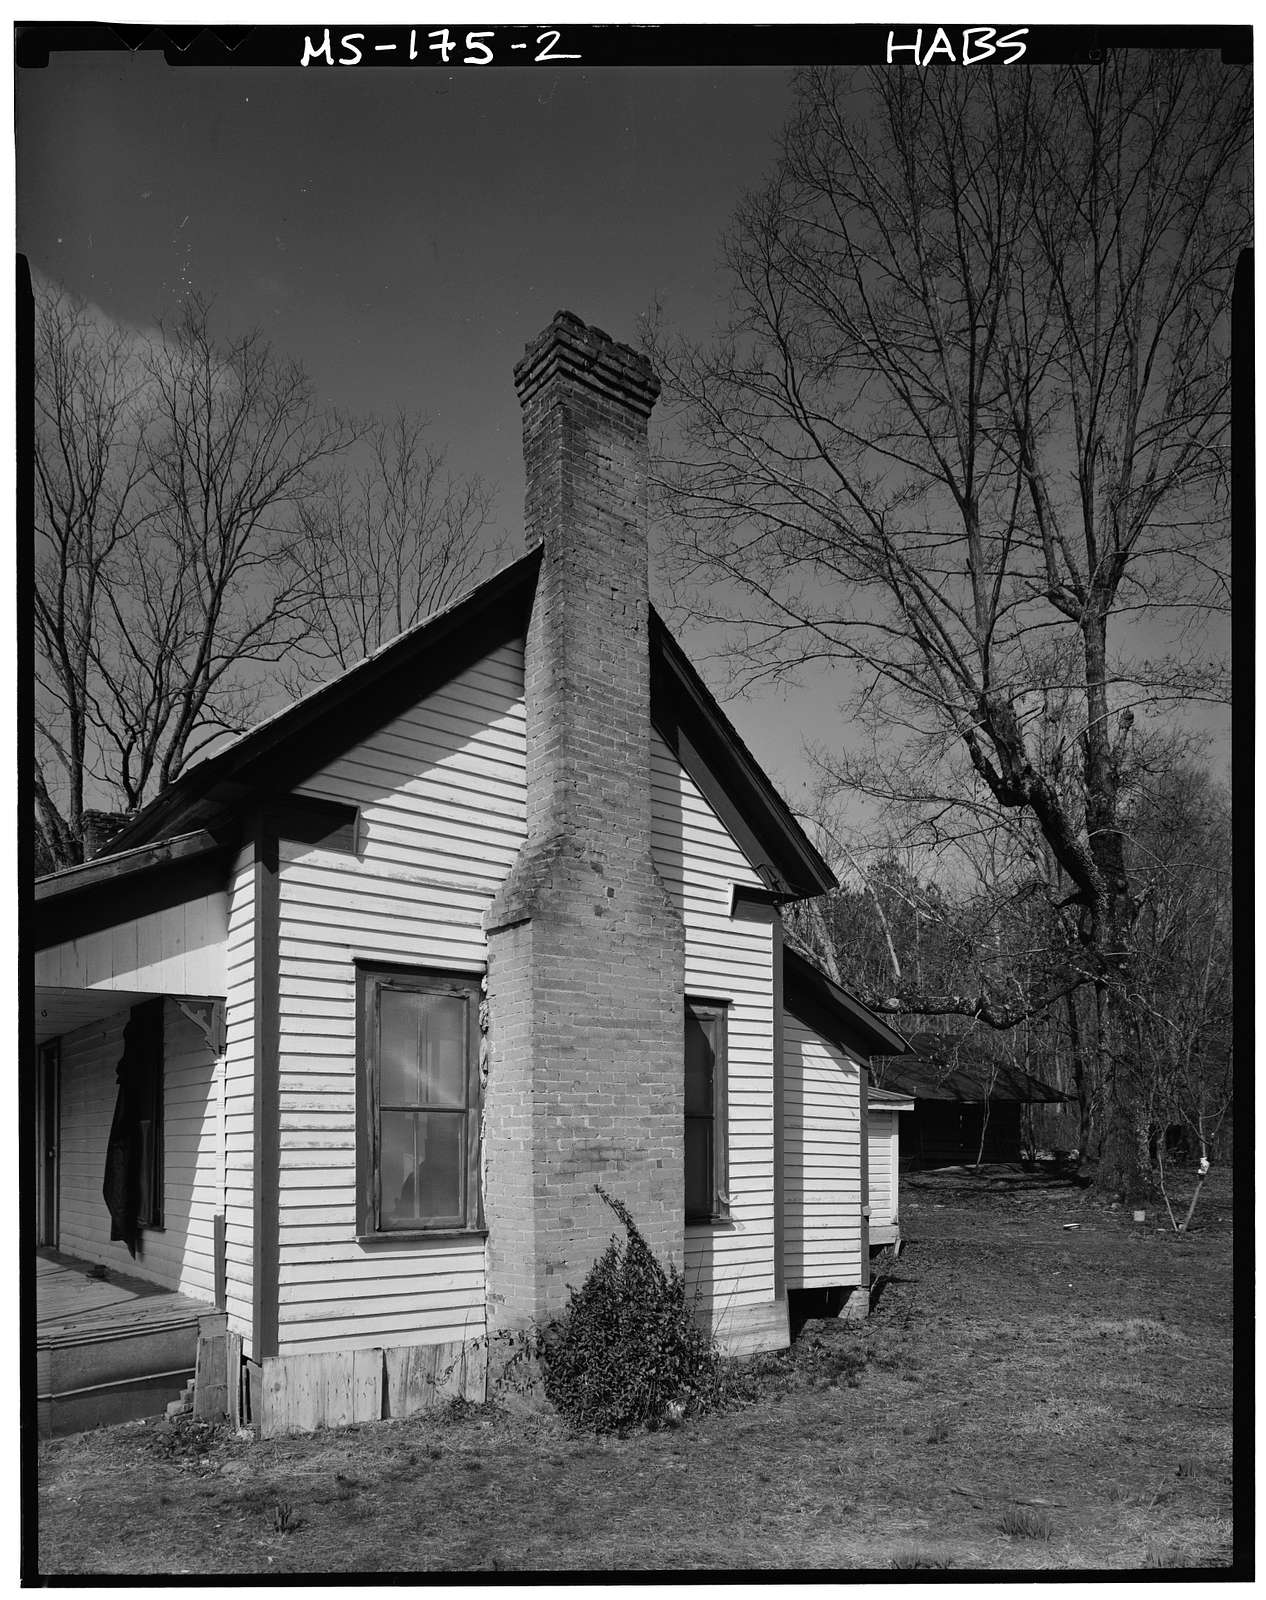 James T. Butler House, Old Natchez Trace, Tishomingo, Tishomingo County, MS